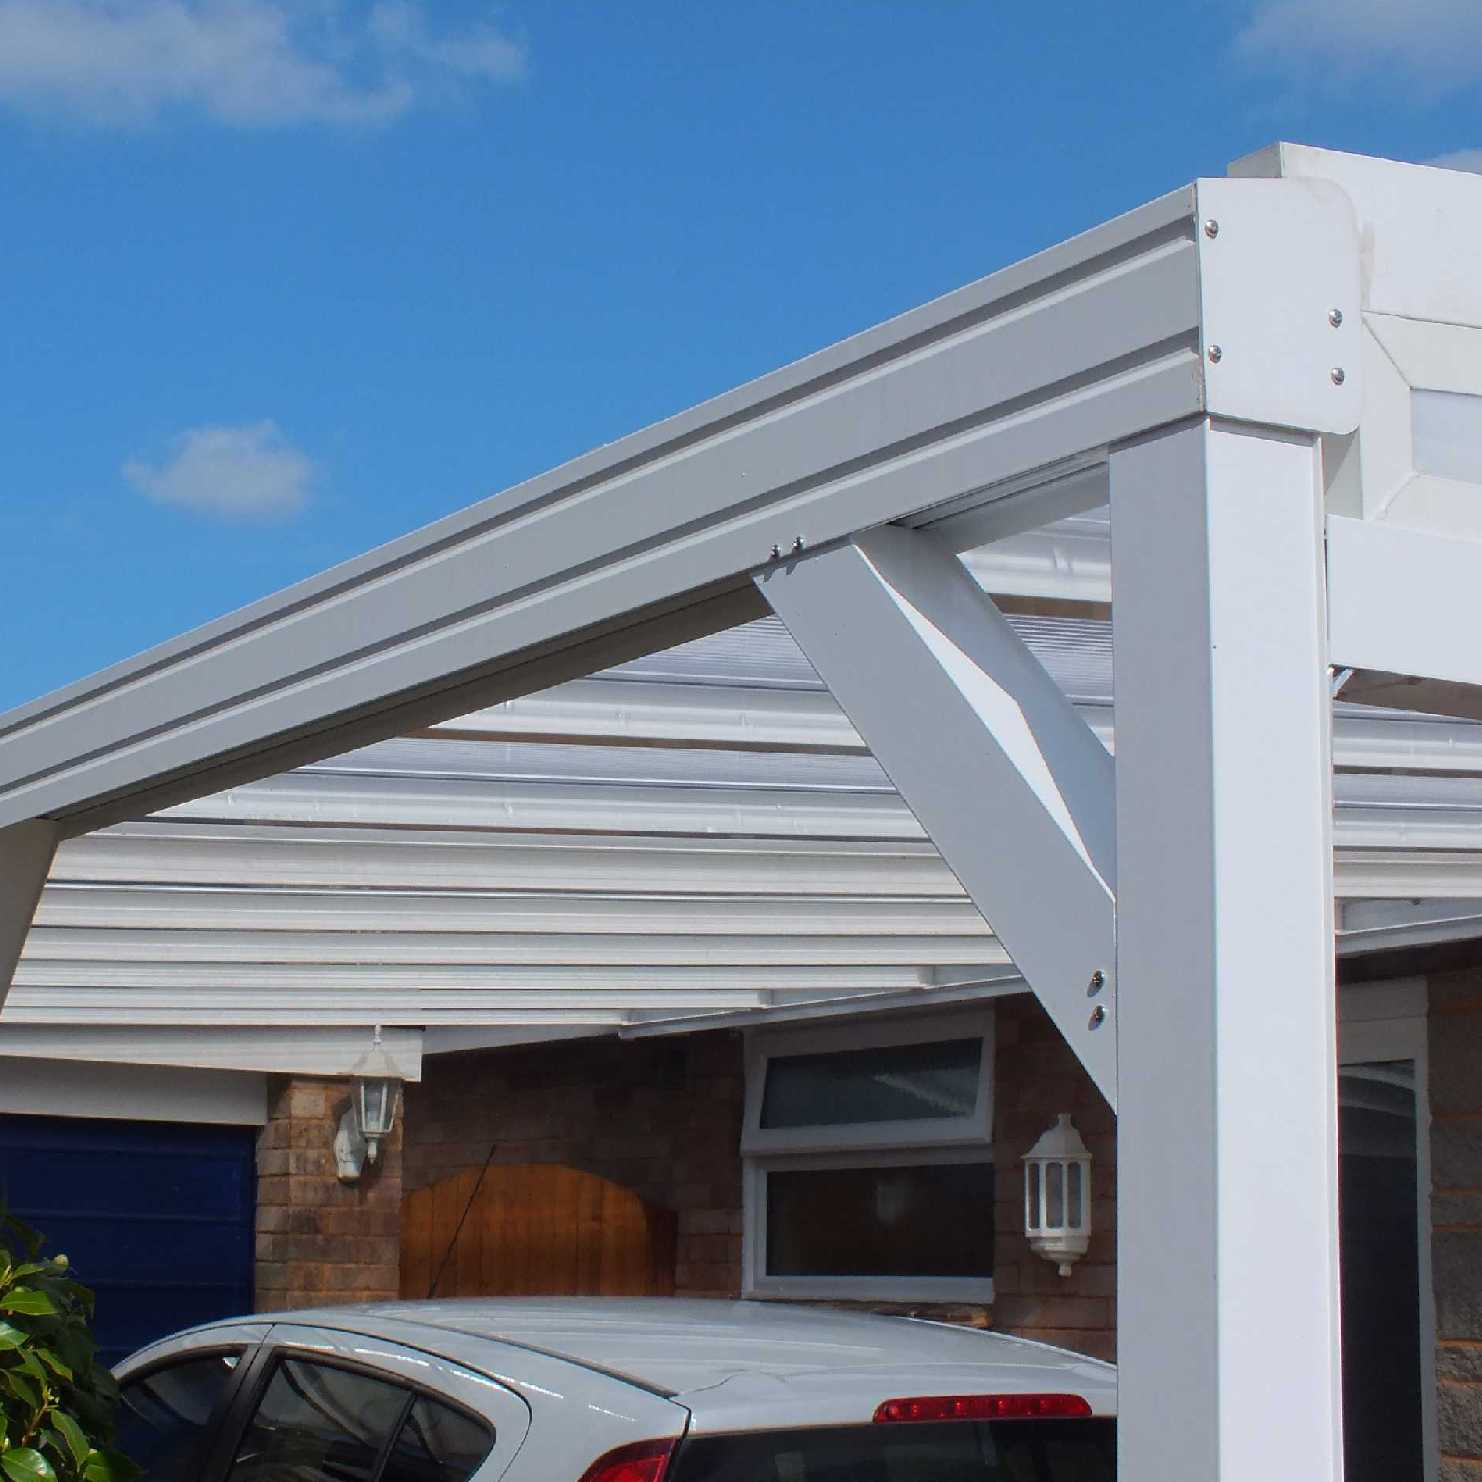 Great deals on Omega Smart White Lean-To Canopy with 16mm Polycarbonate Glazing - 6.3m (W) x 1.5m (P), (4) Supporting Posts